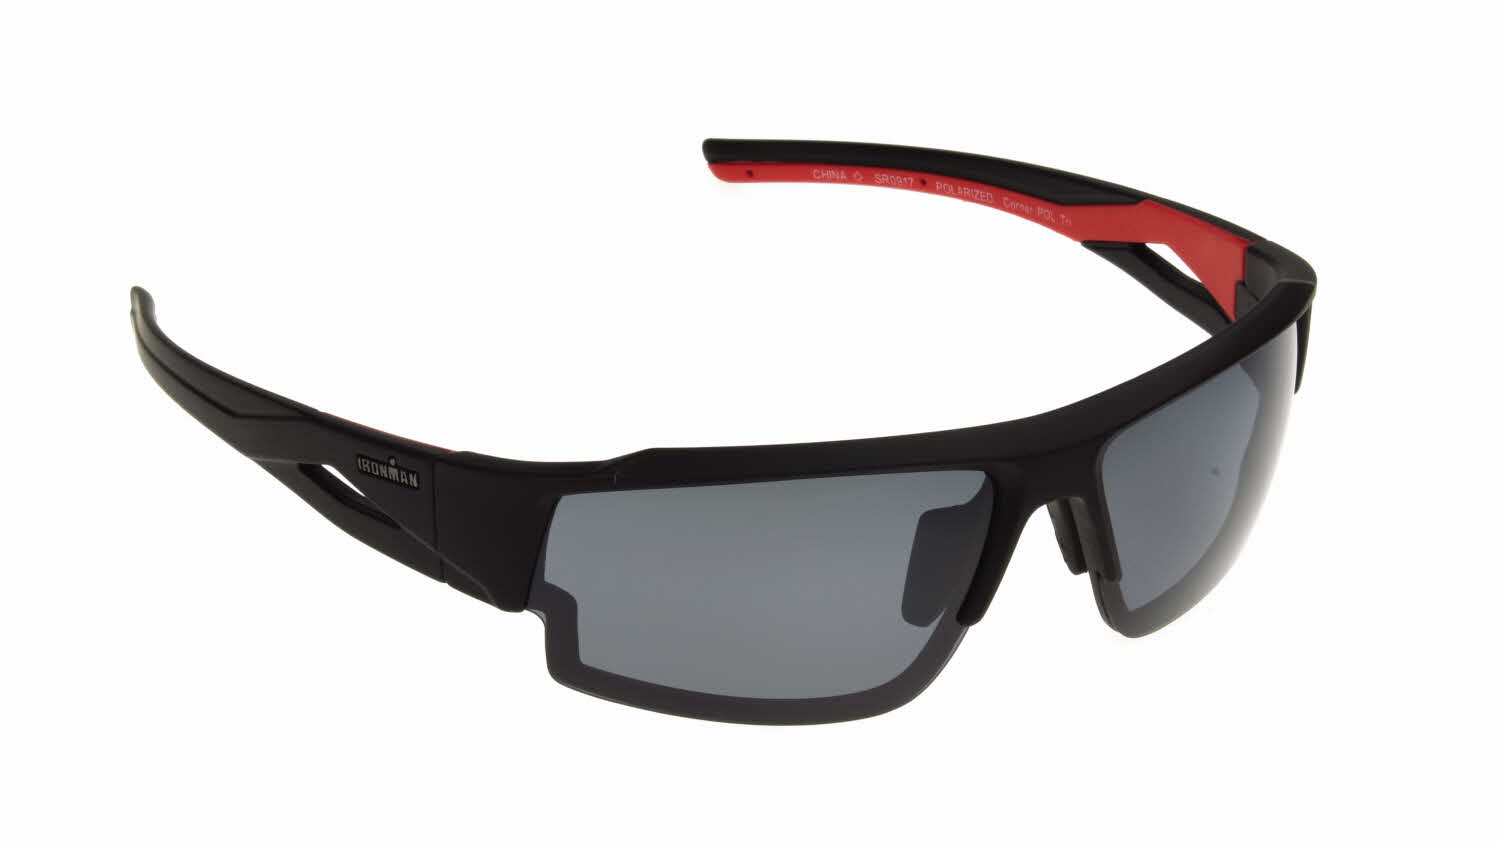 IronMan Corner Sunglasses